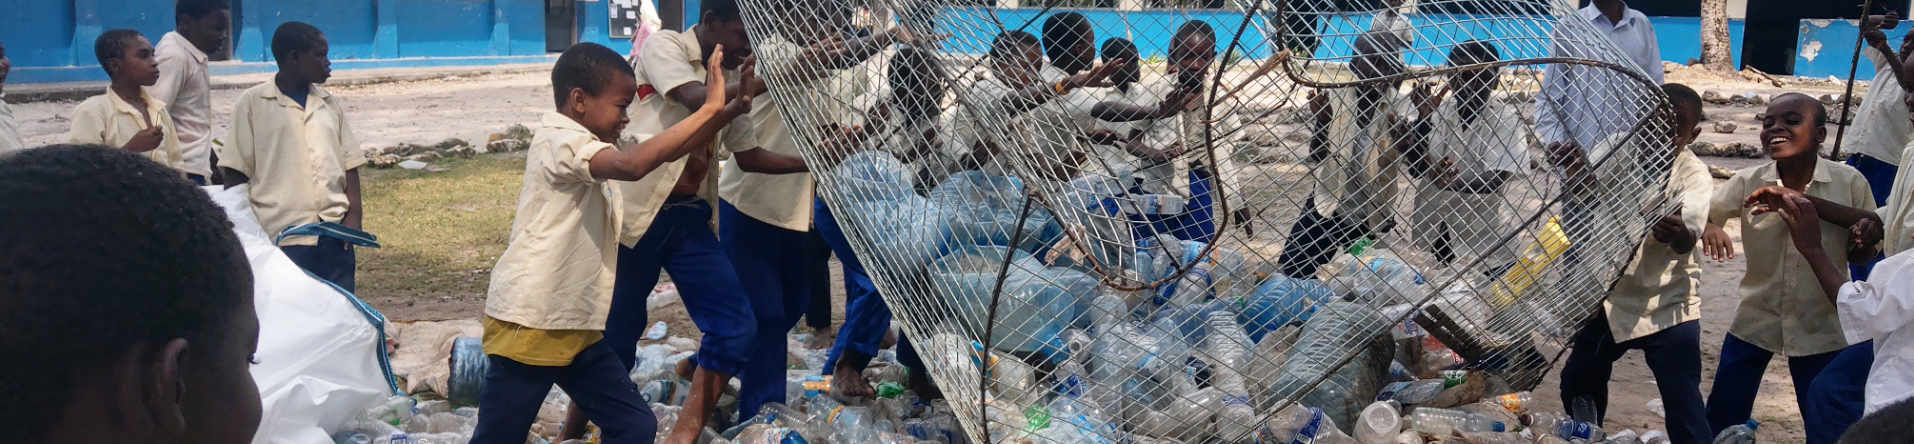 ozeankind-plasticwaste-educationprojects-raiseawareness